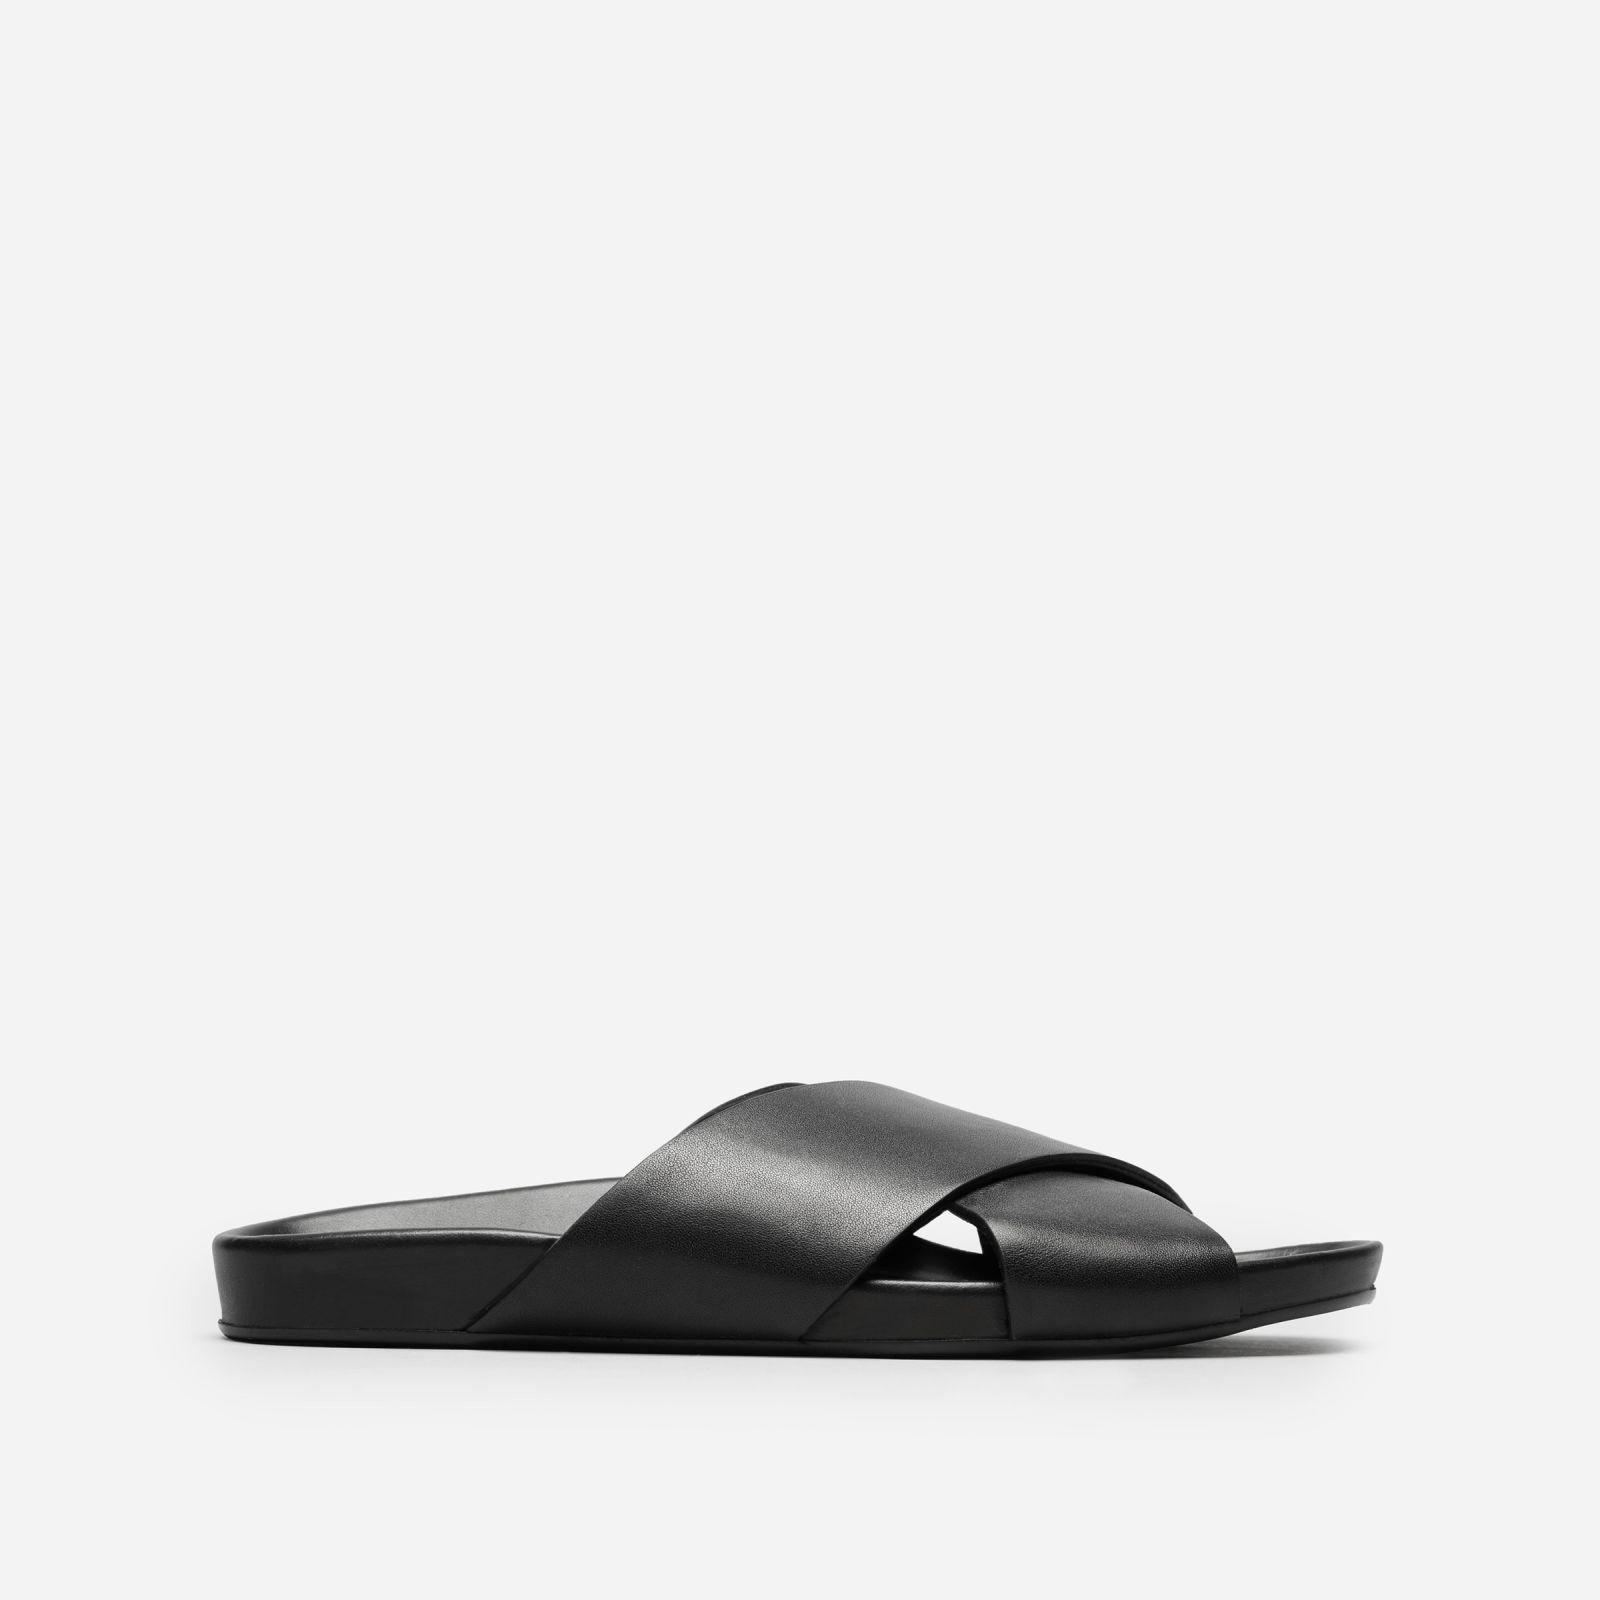 c1155e2bbf9 Everlane - Black The Form Crossover Sandal - Lyst. View fullscreen